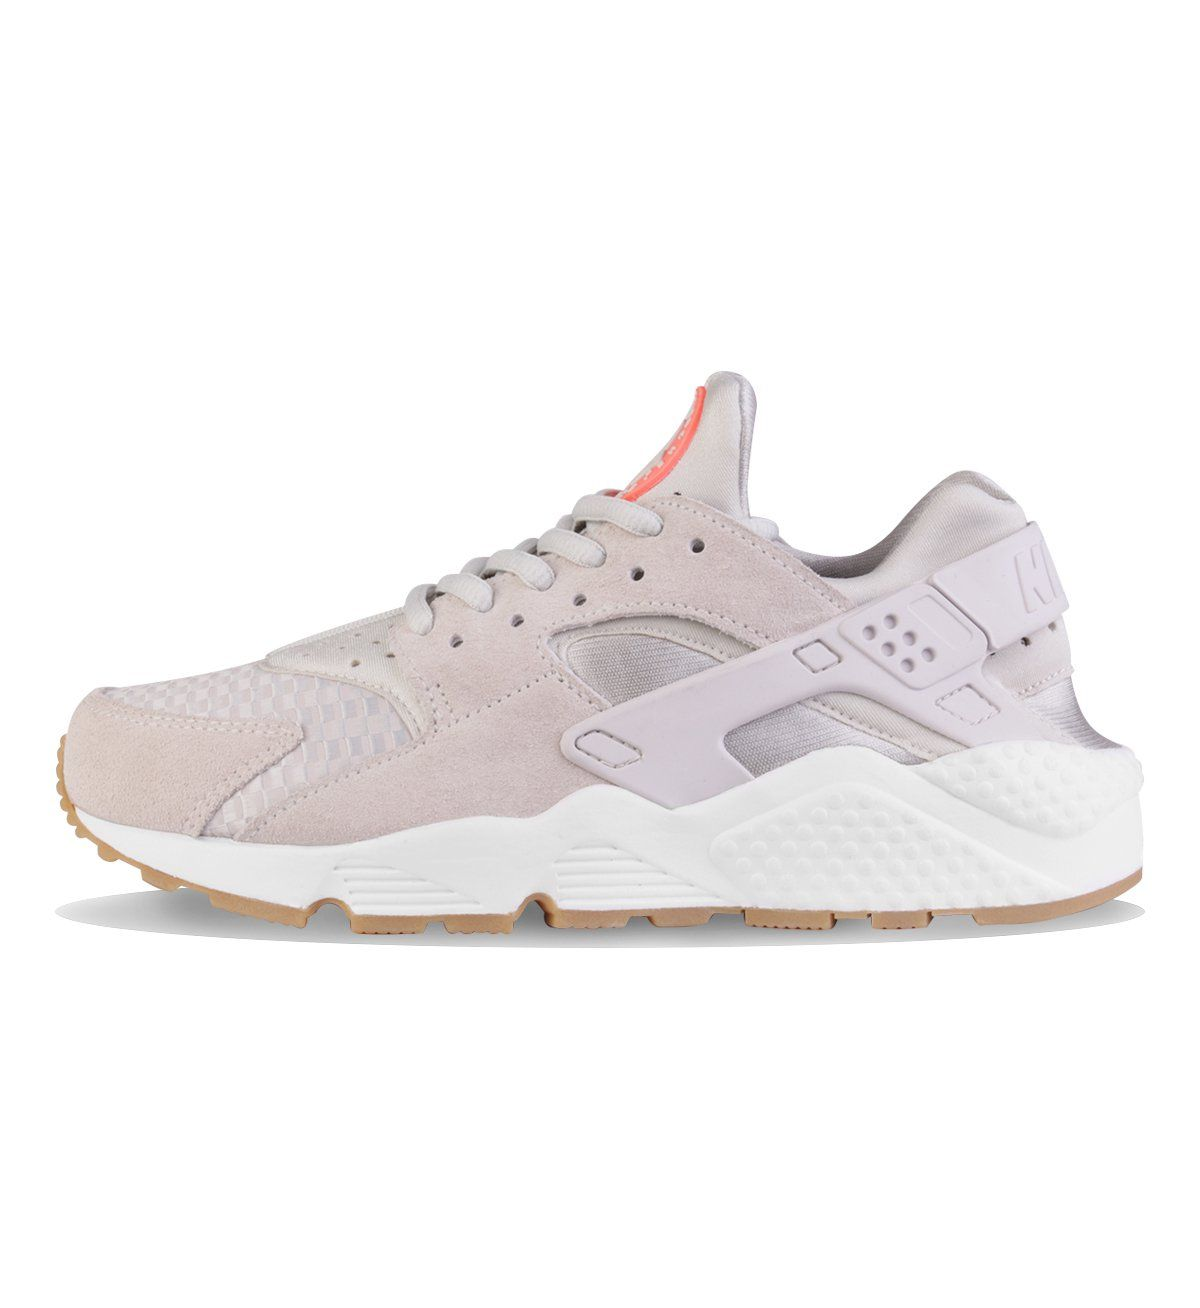 promo code f4a05 6ca60 Nike WMNS Air Huarache Run Textile Light Bone  Light Bone - Nike Womens